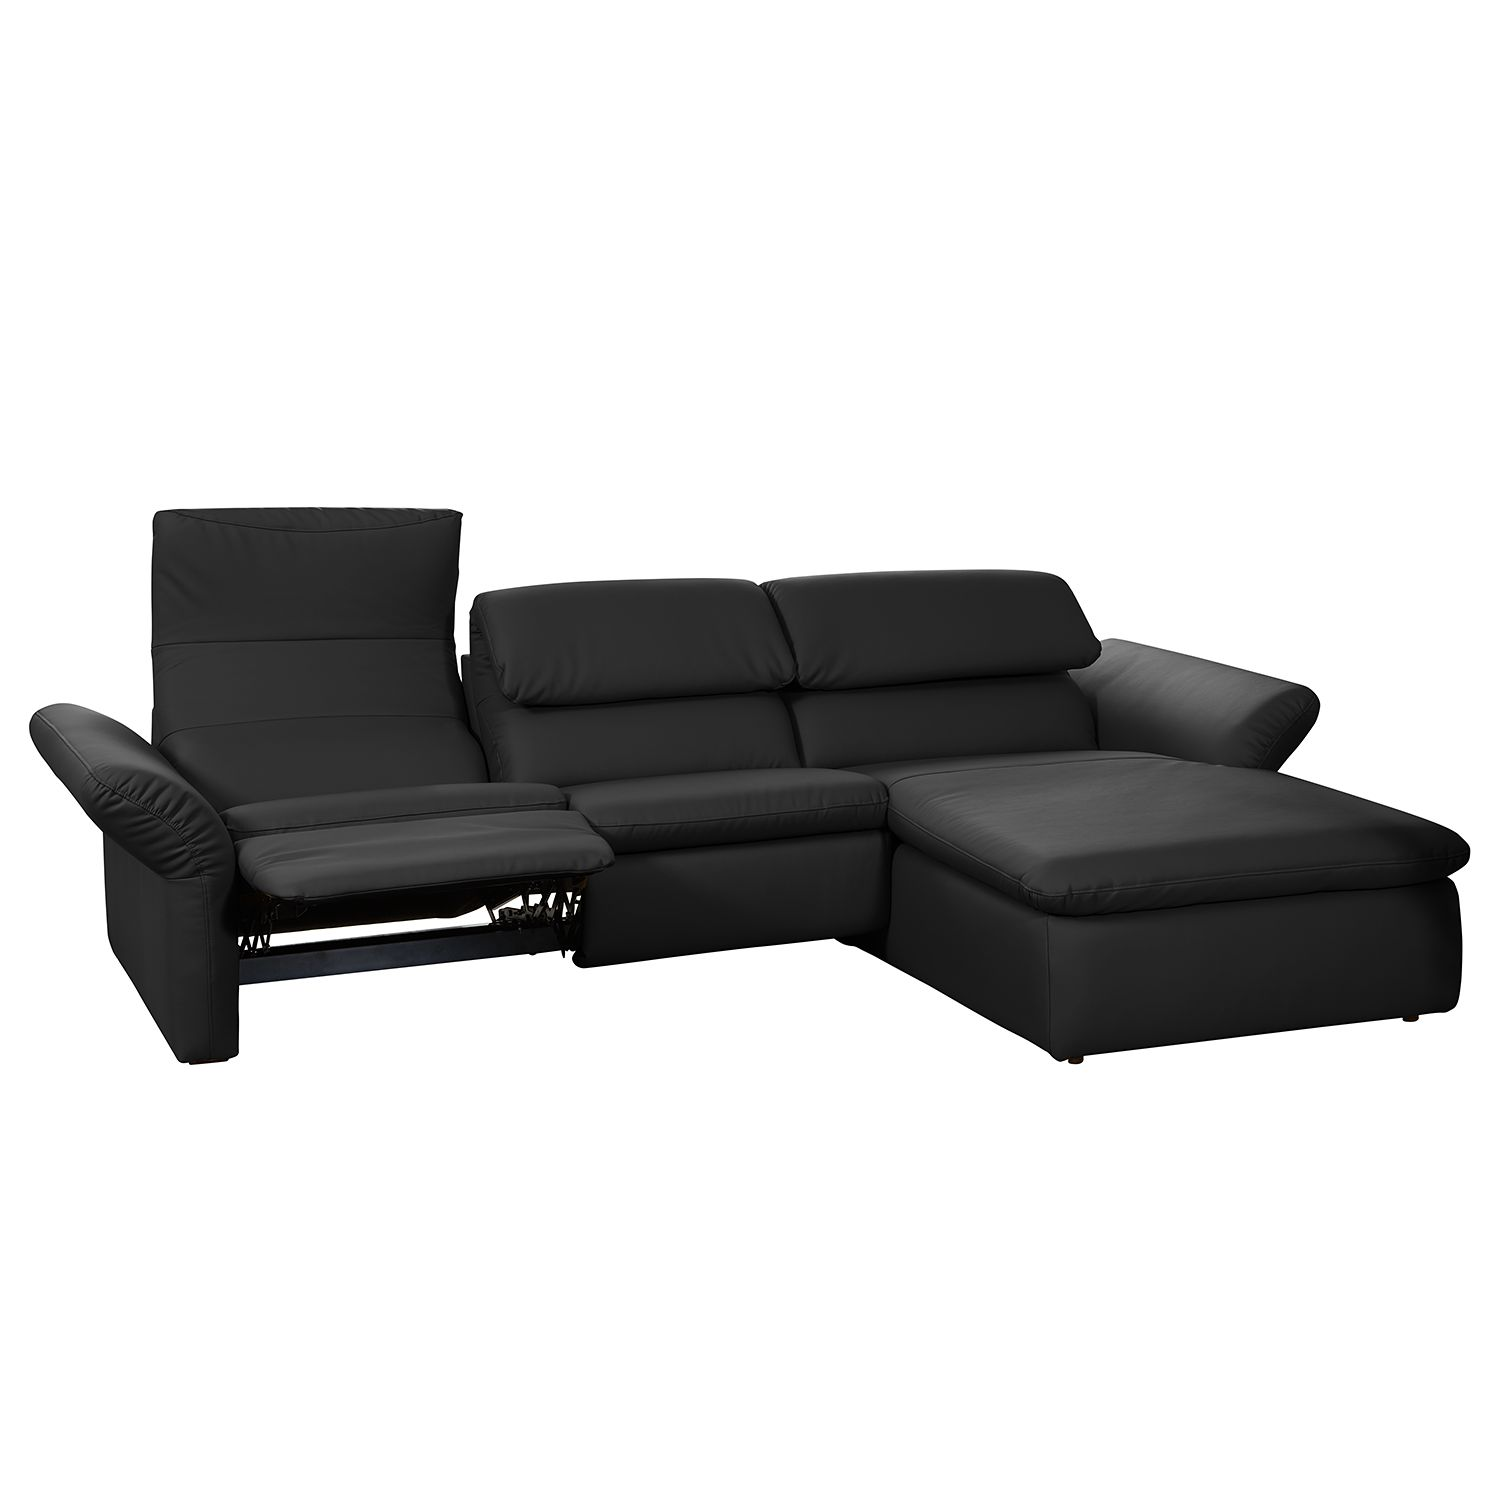 ecksofa mit relaxfunktion inspirierendes design f r wohnm bel. Black Bedroom Furniture Sets. Home Design Ideas